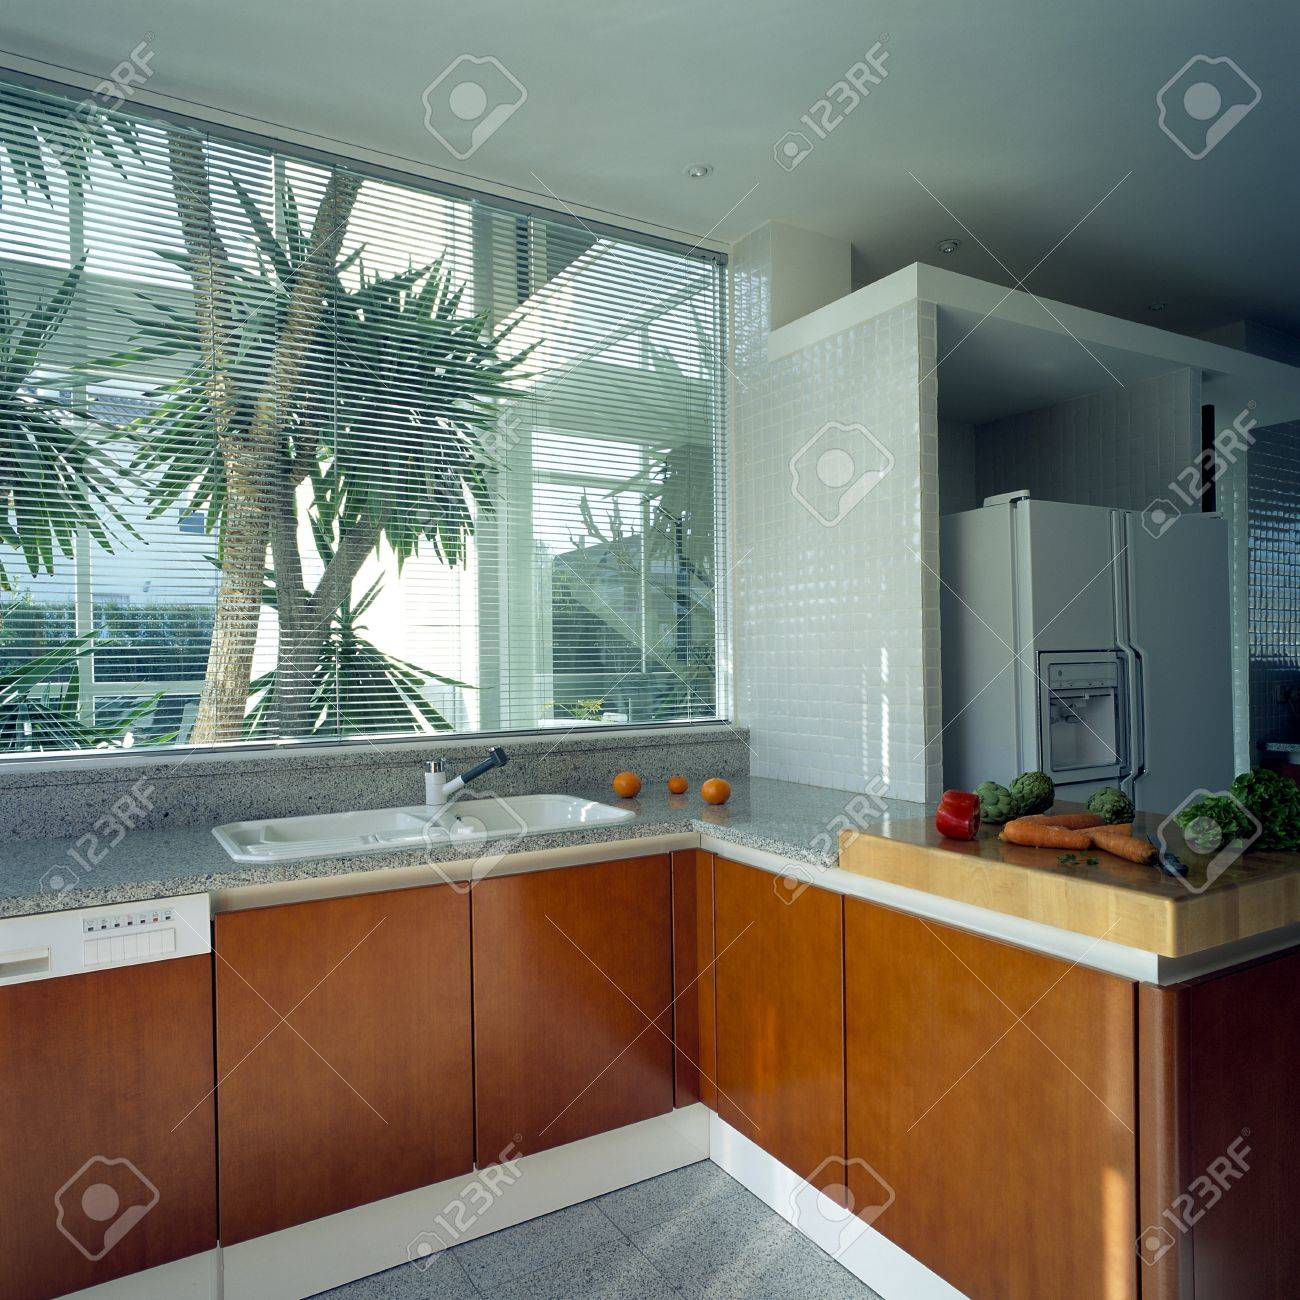 View of a ventilated kitchen Stock Photo - 7215327